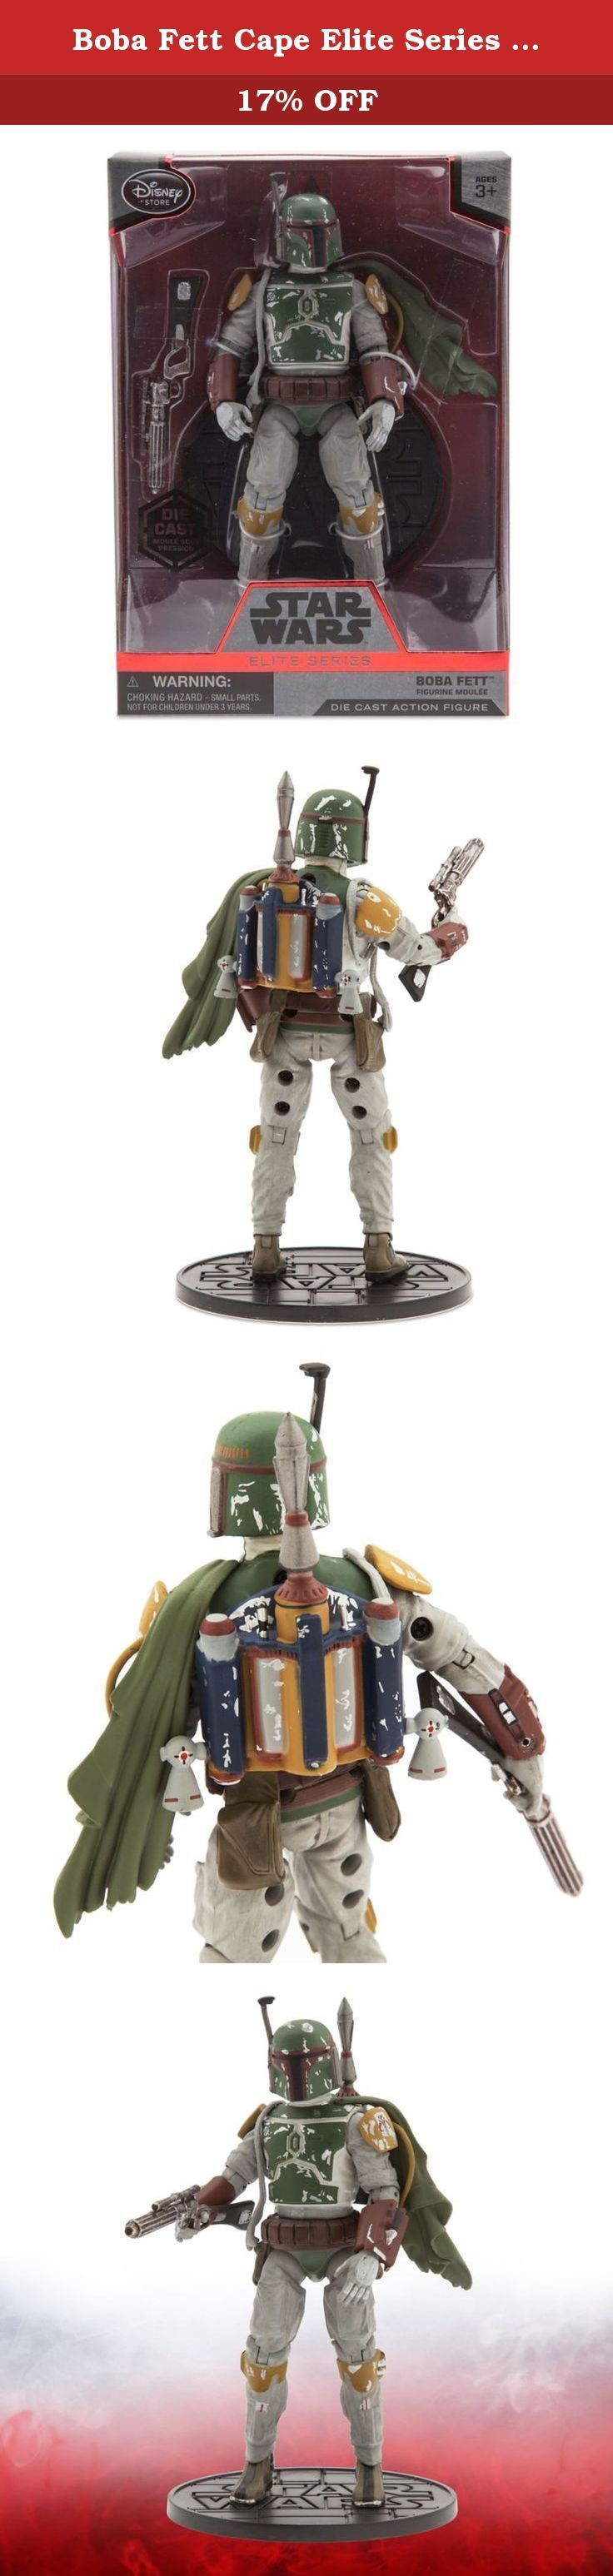 Boba Fett Cape Elite Series Die Cast Action Figure - 7'' - Star Wars. In collaboration with Lucasfilm, Disney presents the Star Wars Elite Series Boba Fett die cast action figure inspired by the classic film saga. With blaster in hand, this mysterious bounty hunter will quickly capture your attention.